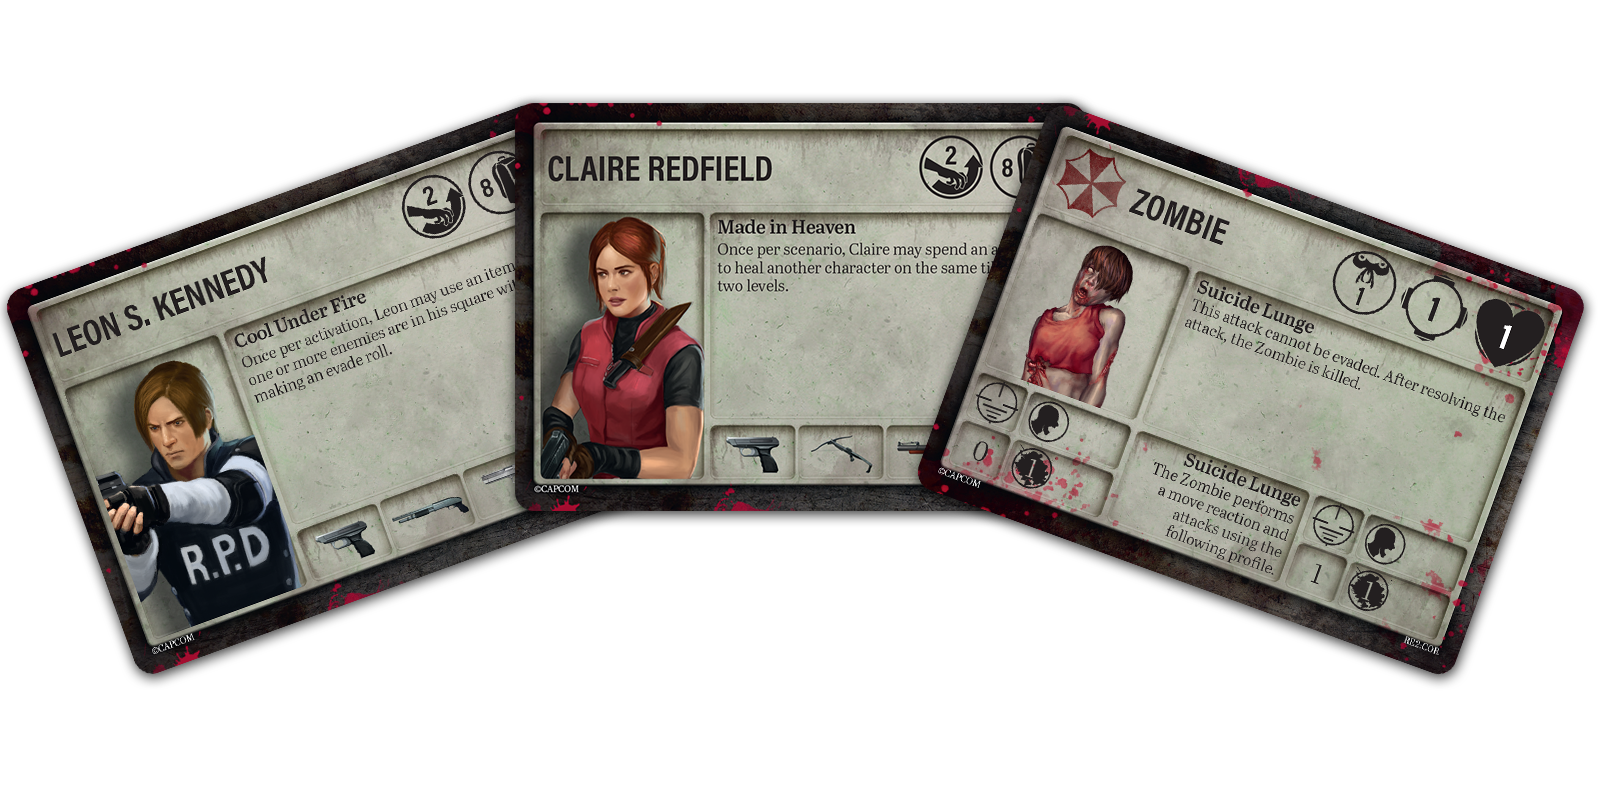 Leon & Claire Player Character Cards [left] and a Zombie Enemy Card [right]